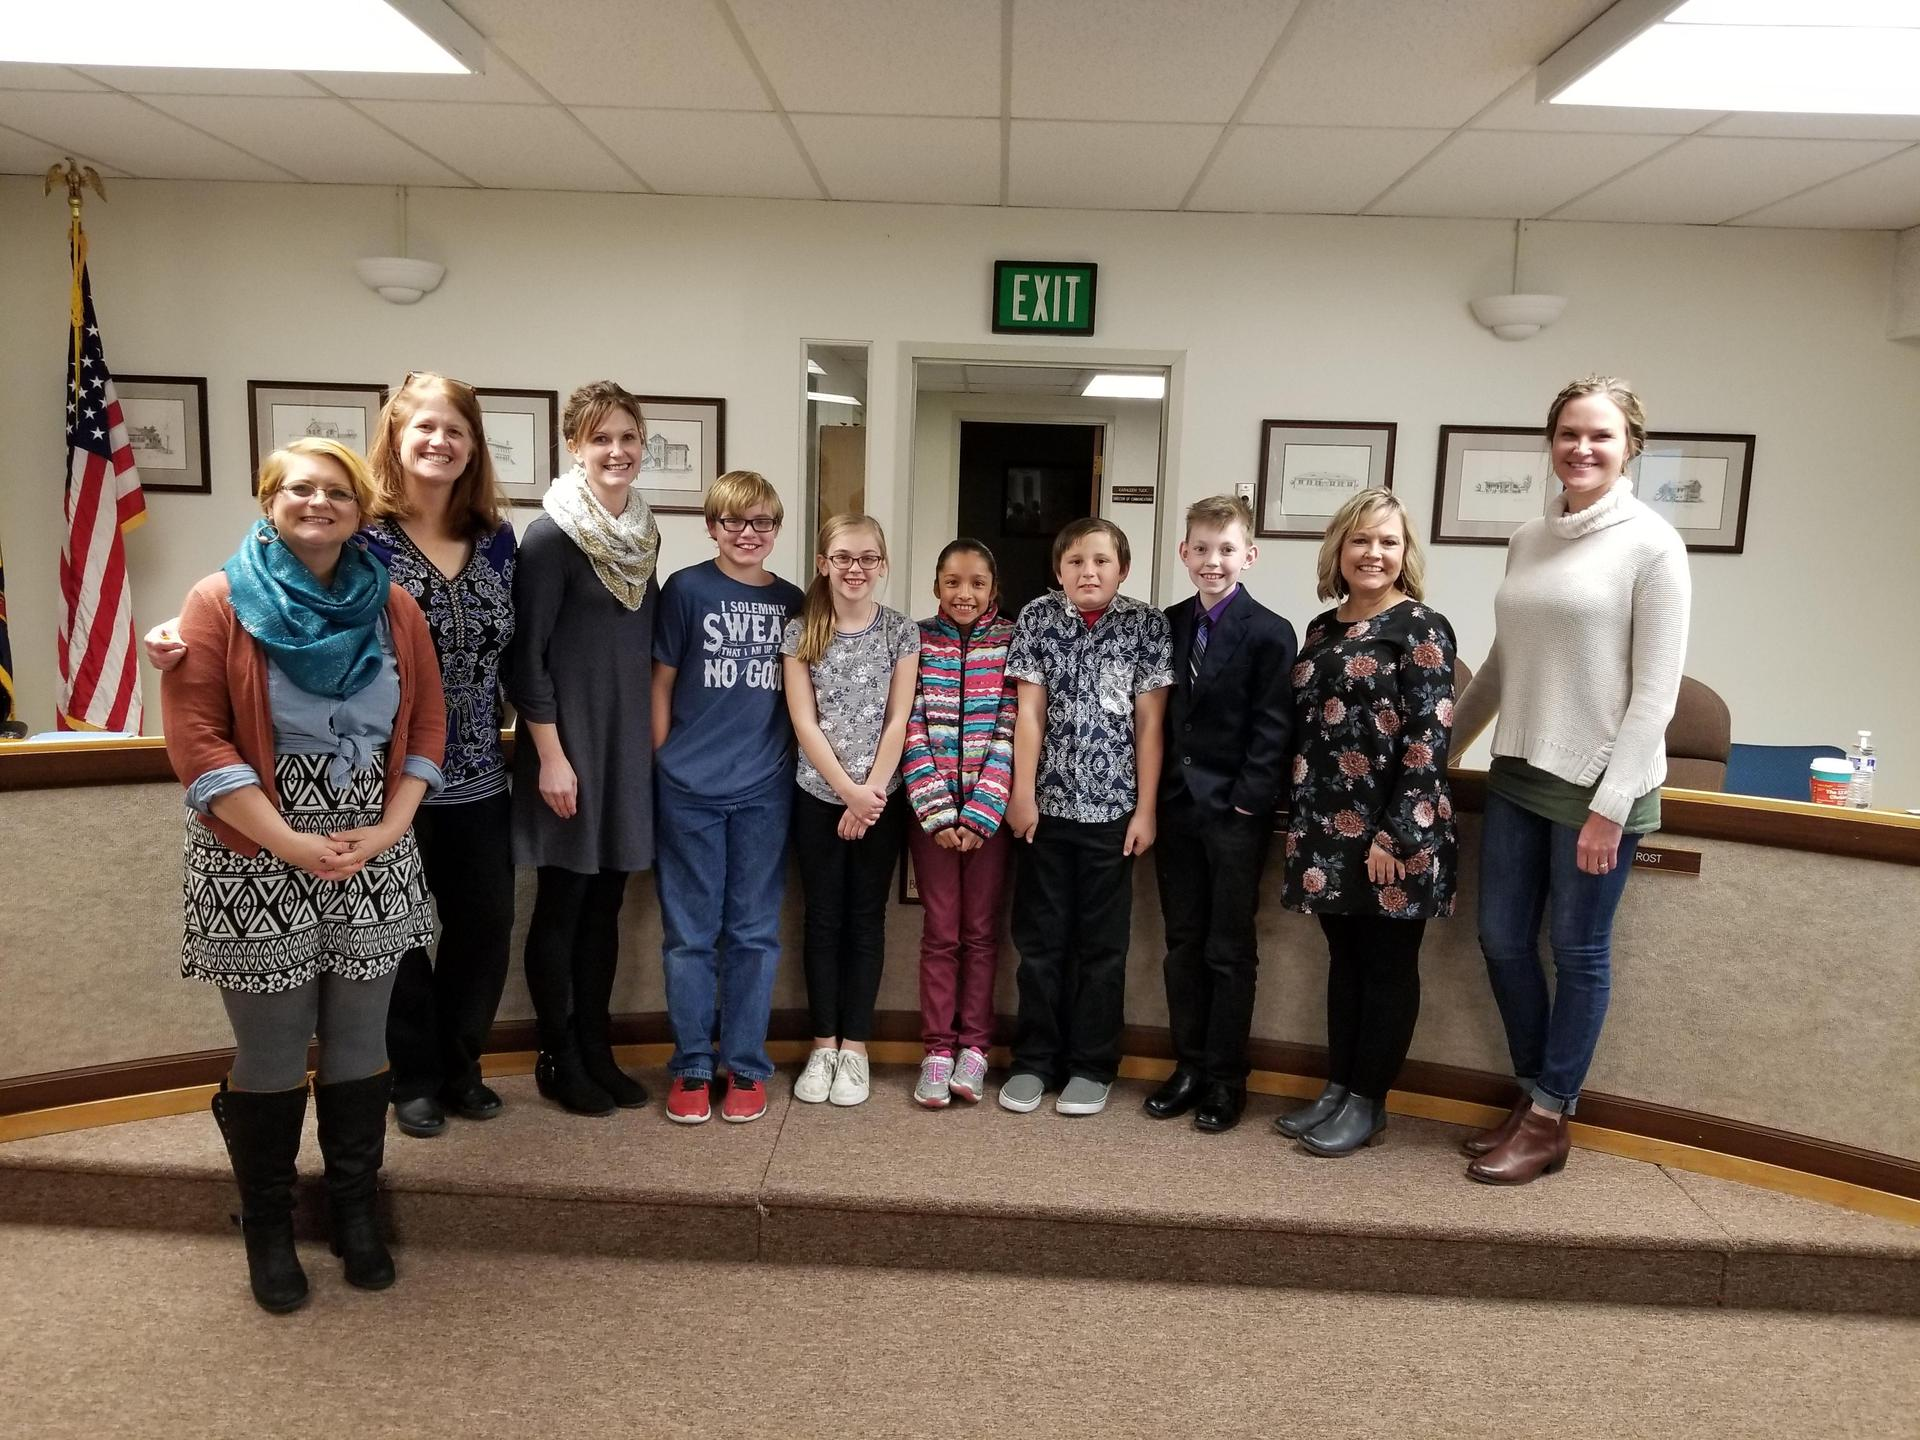 Endeavor Elementary students, Principal Heather Yarbrough and Trustees Allison Westfall, Janelle Stauffer and Heather Lewis pose at the board meeting.